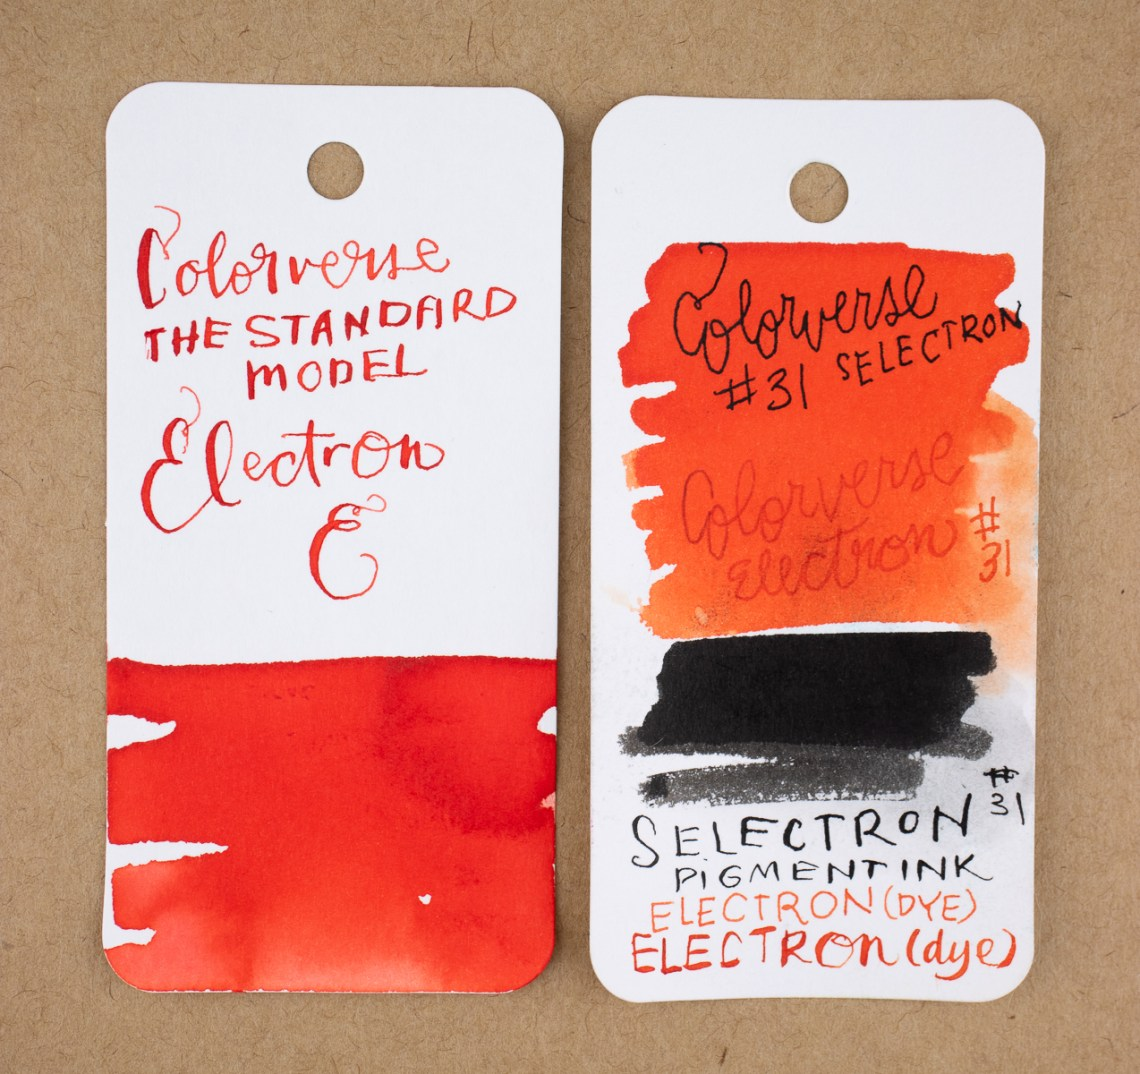 Colorverse Electron comparison